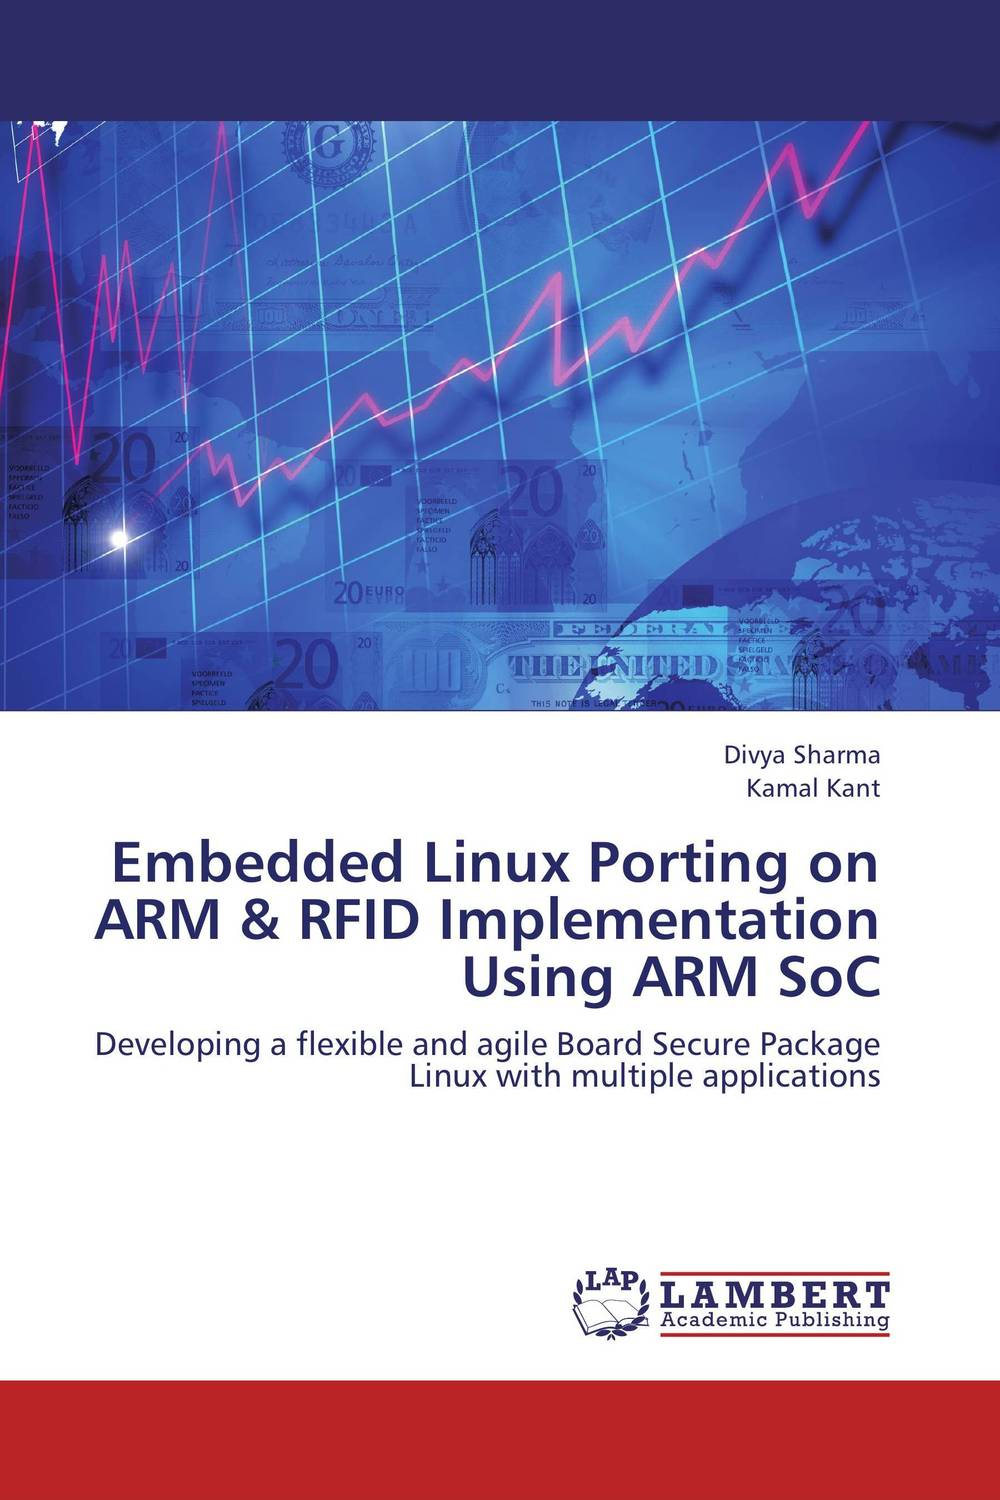 Embedded Linux Porting on ARM & RFID Implementation Using ARM SoC